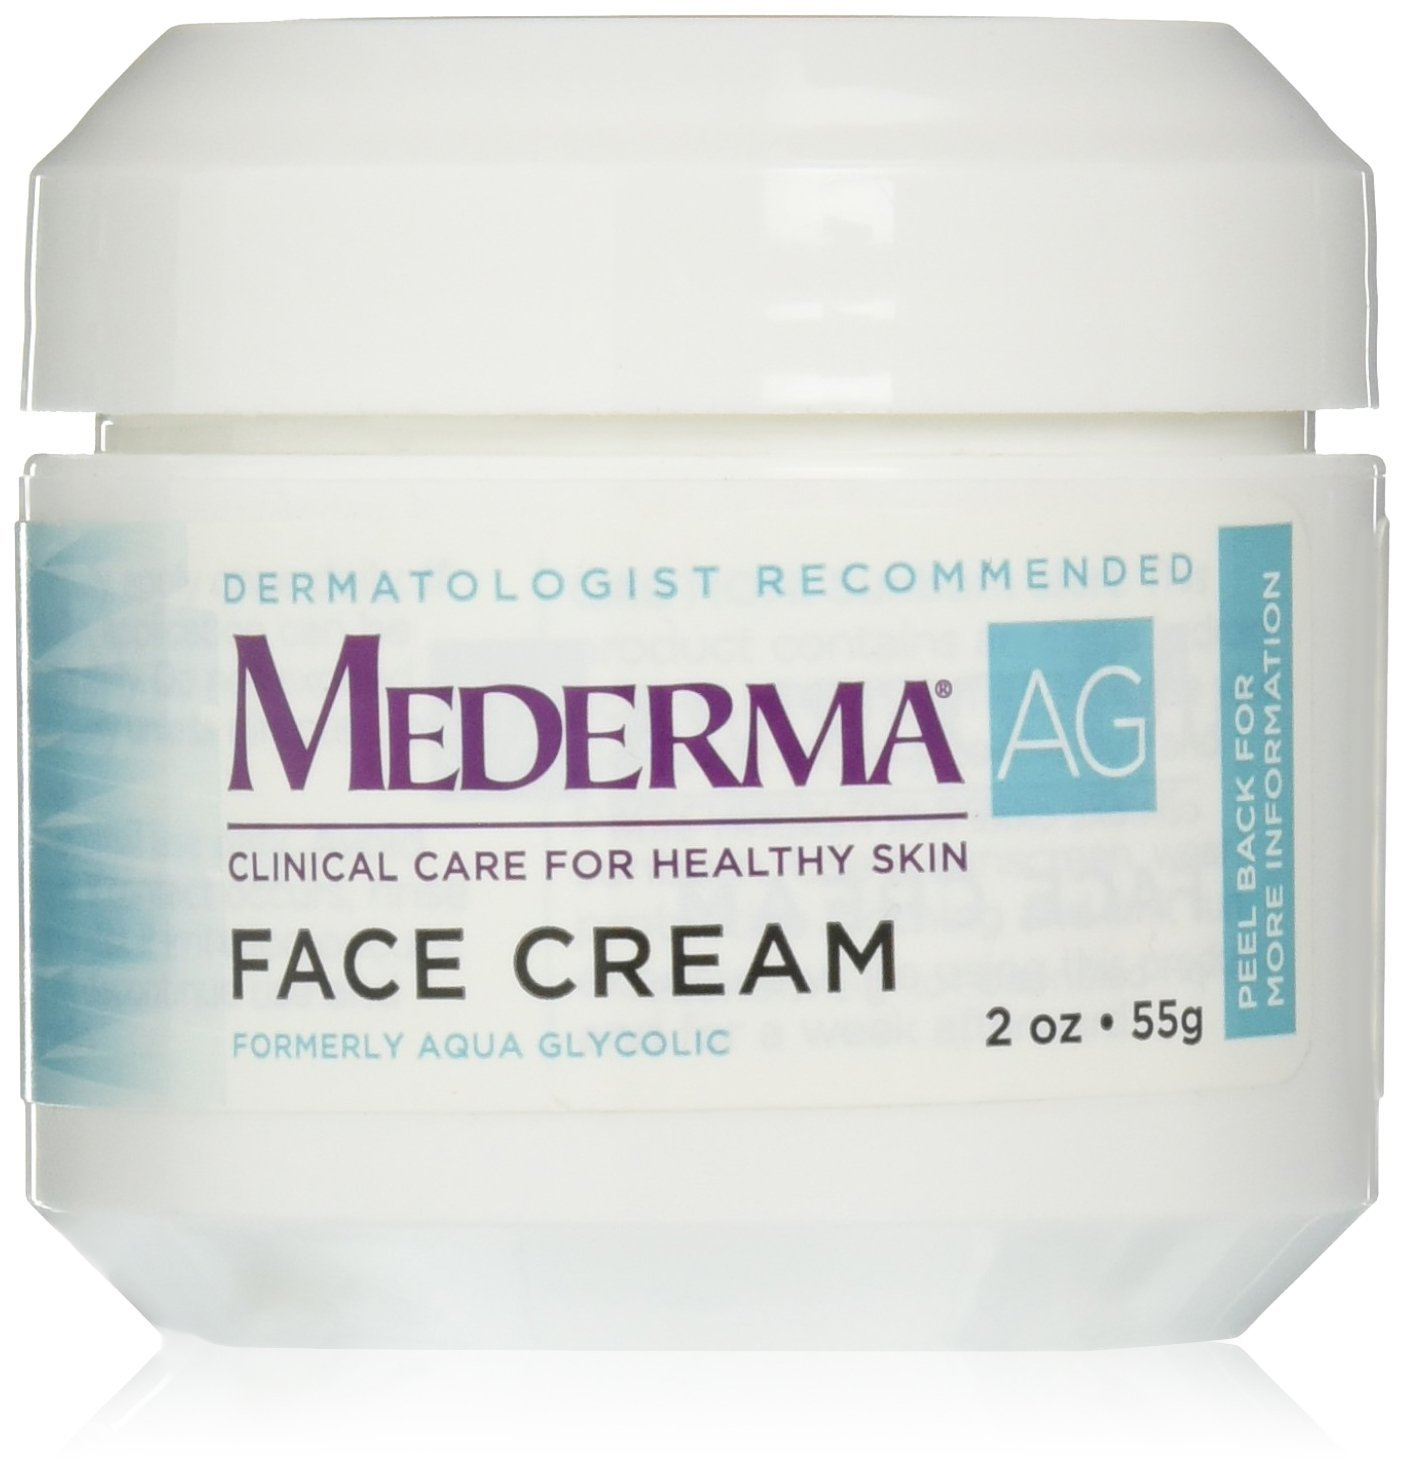 Moisturizing Face Cream – with hyaluronic acid for moisture and glycolic acid to gently remove rough, dry skin – dermatologist rWalmartmended brand - fragrance-free,.., By Mederma AG